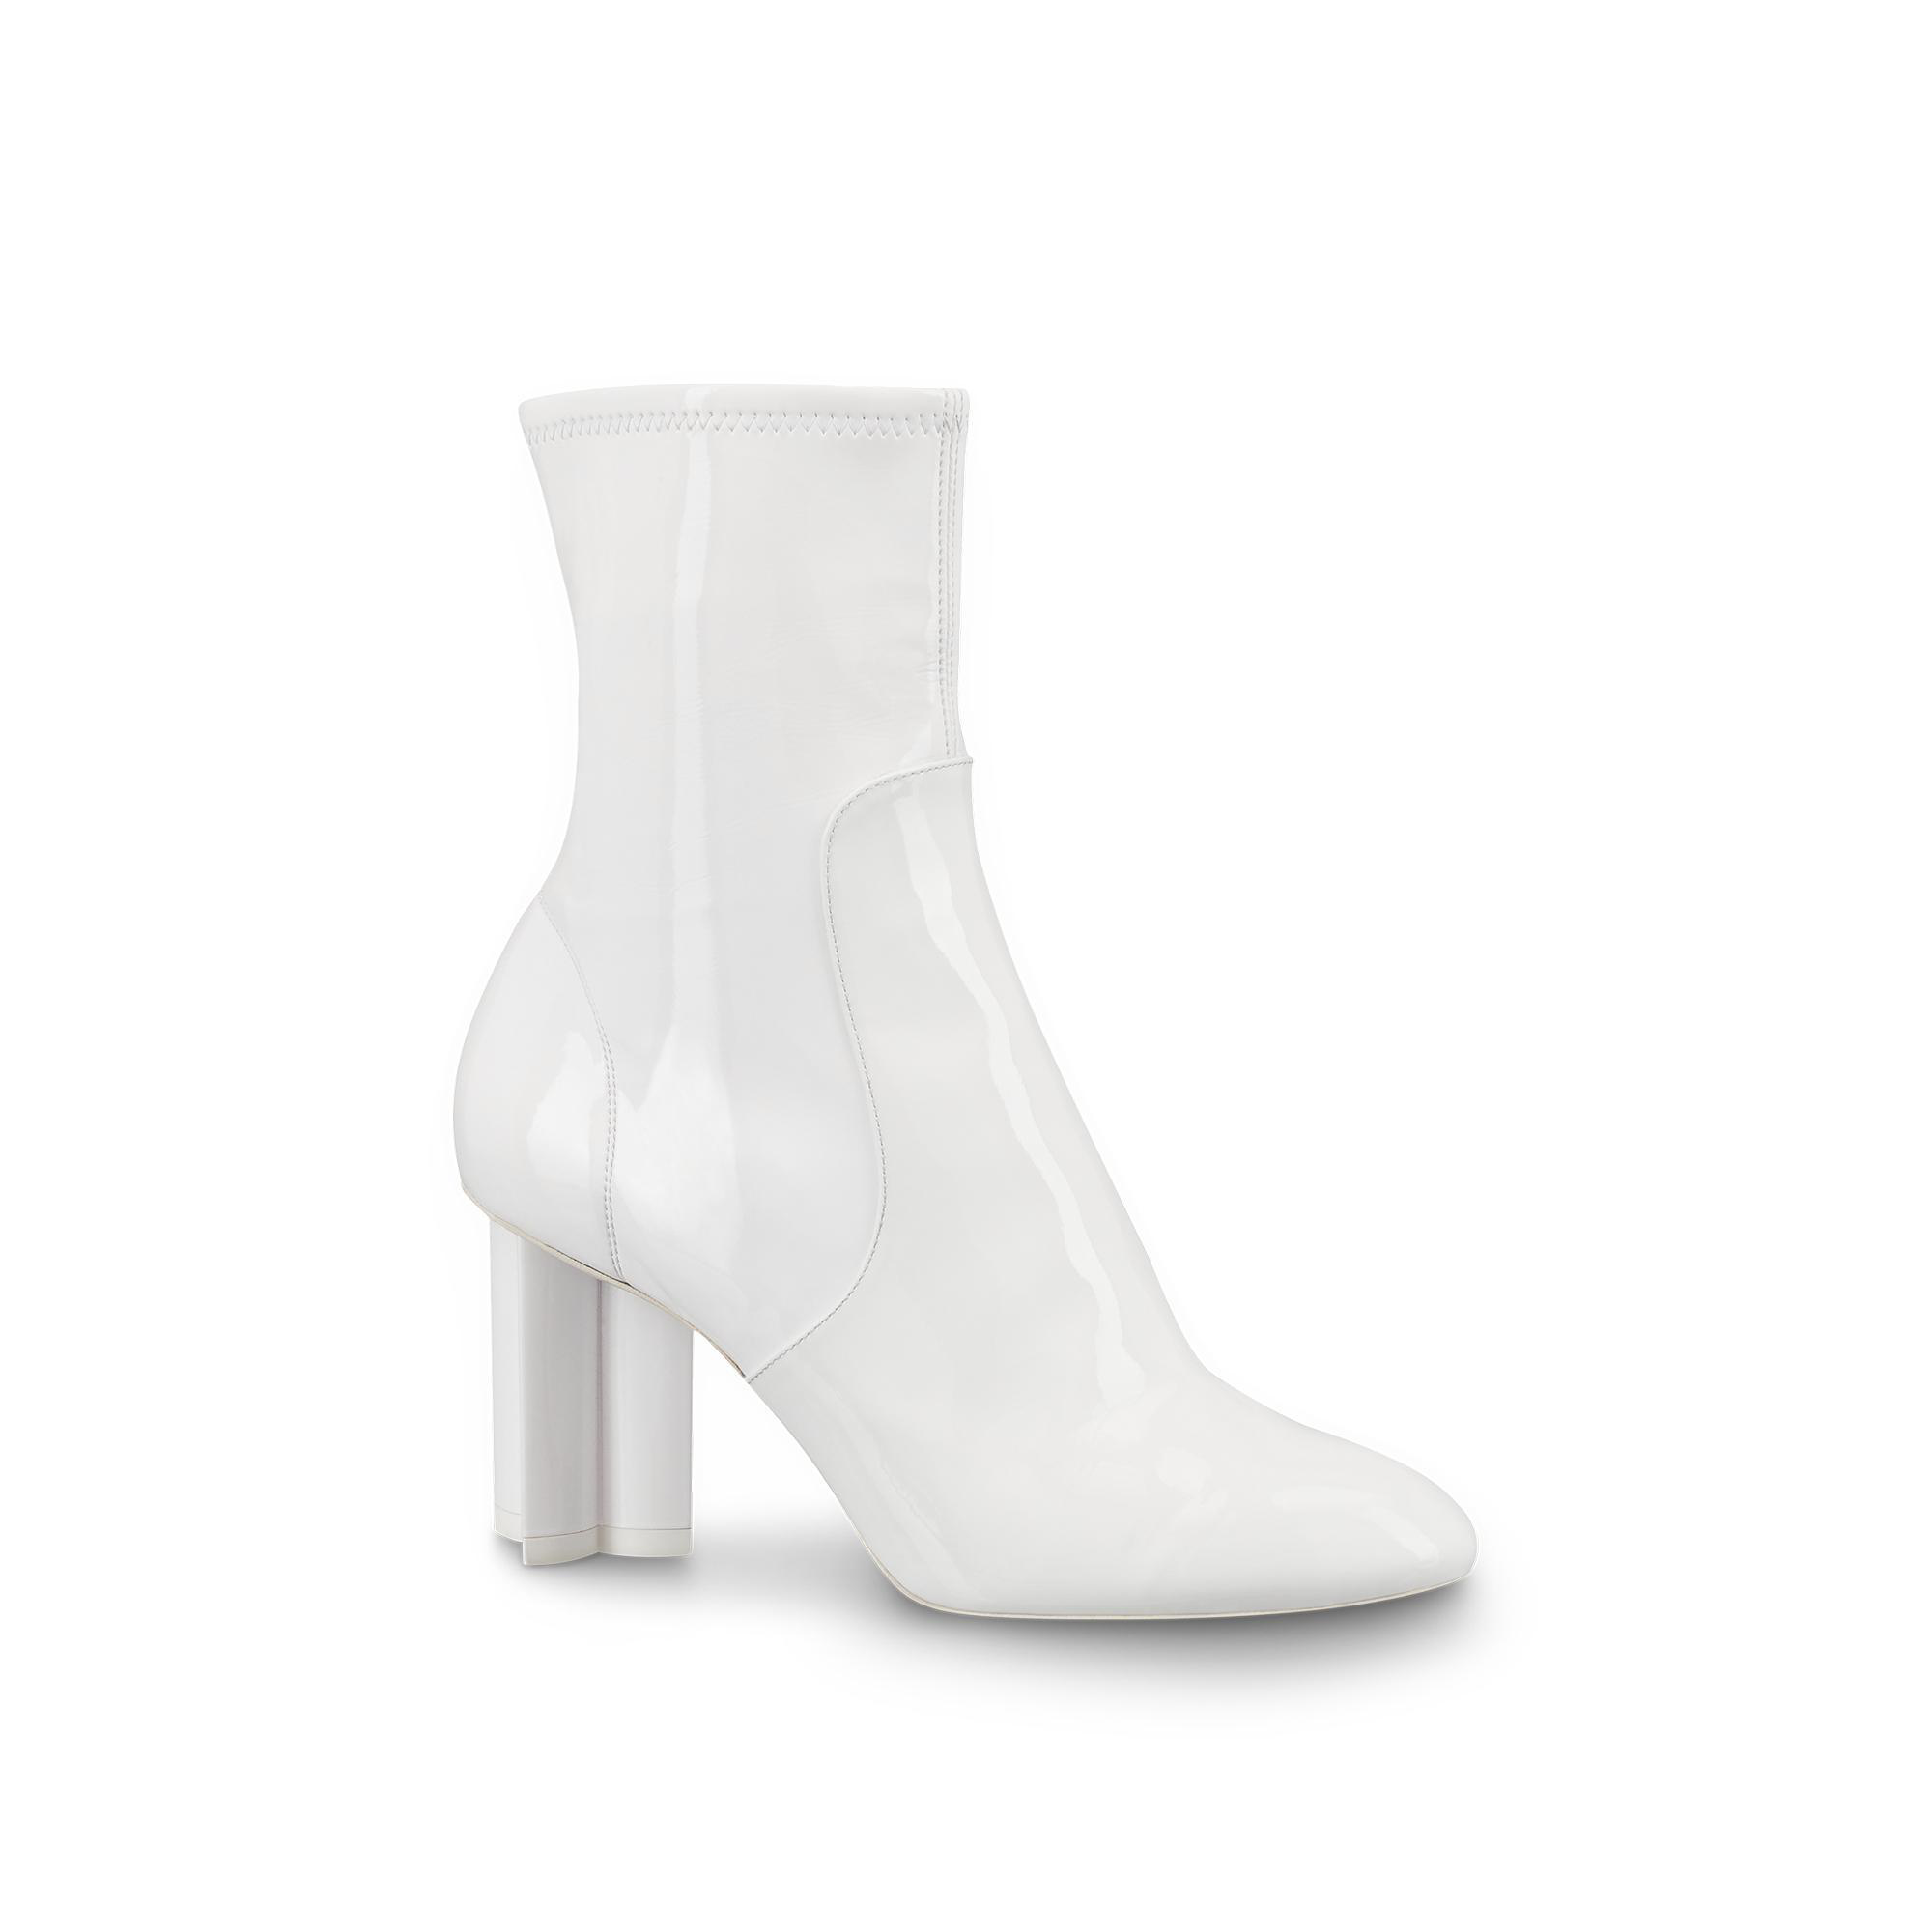 08955170bc35 Louis Vuitton Silhouette Ankle Boot In White